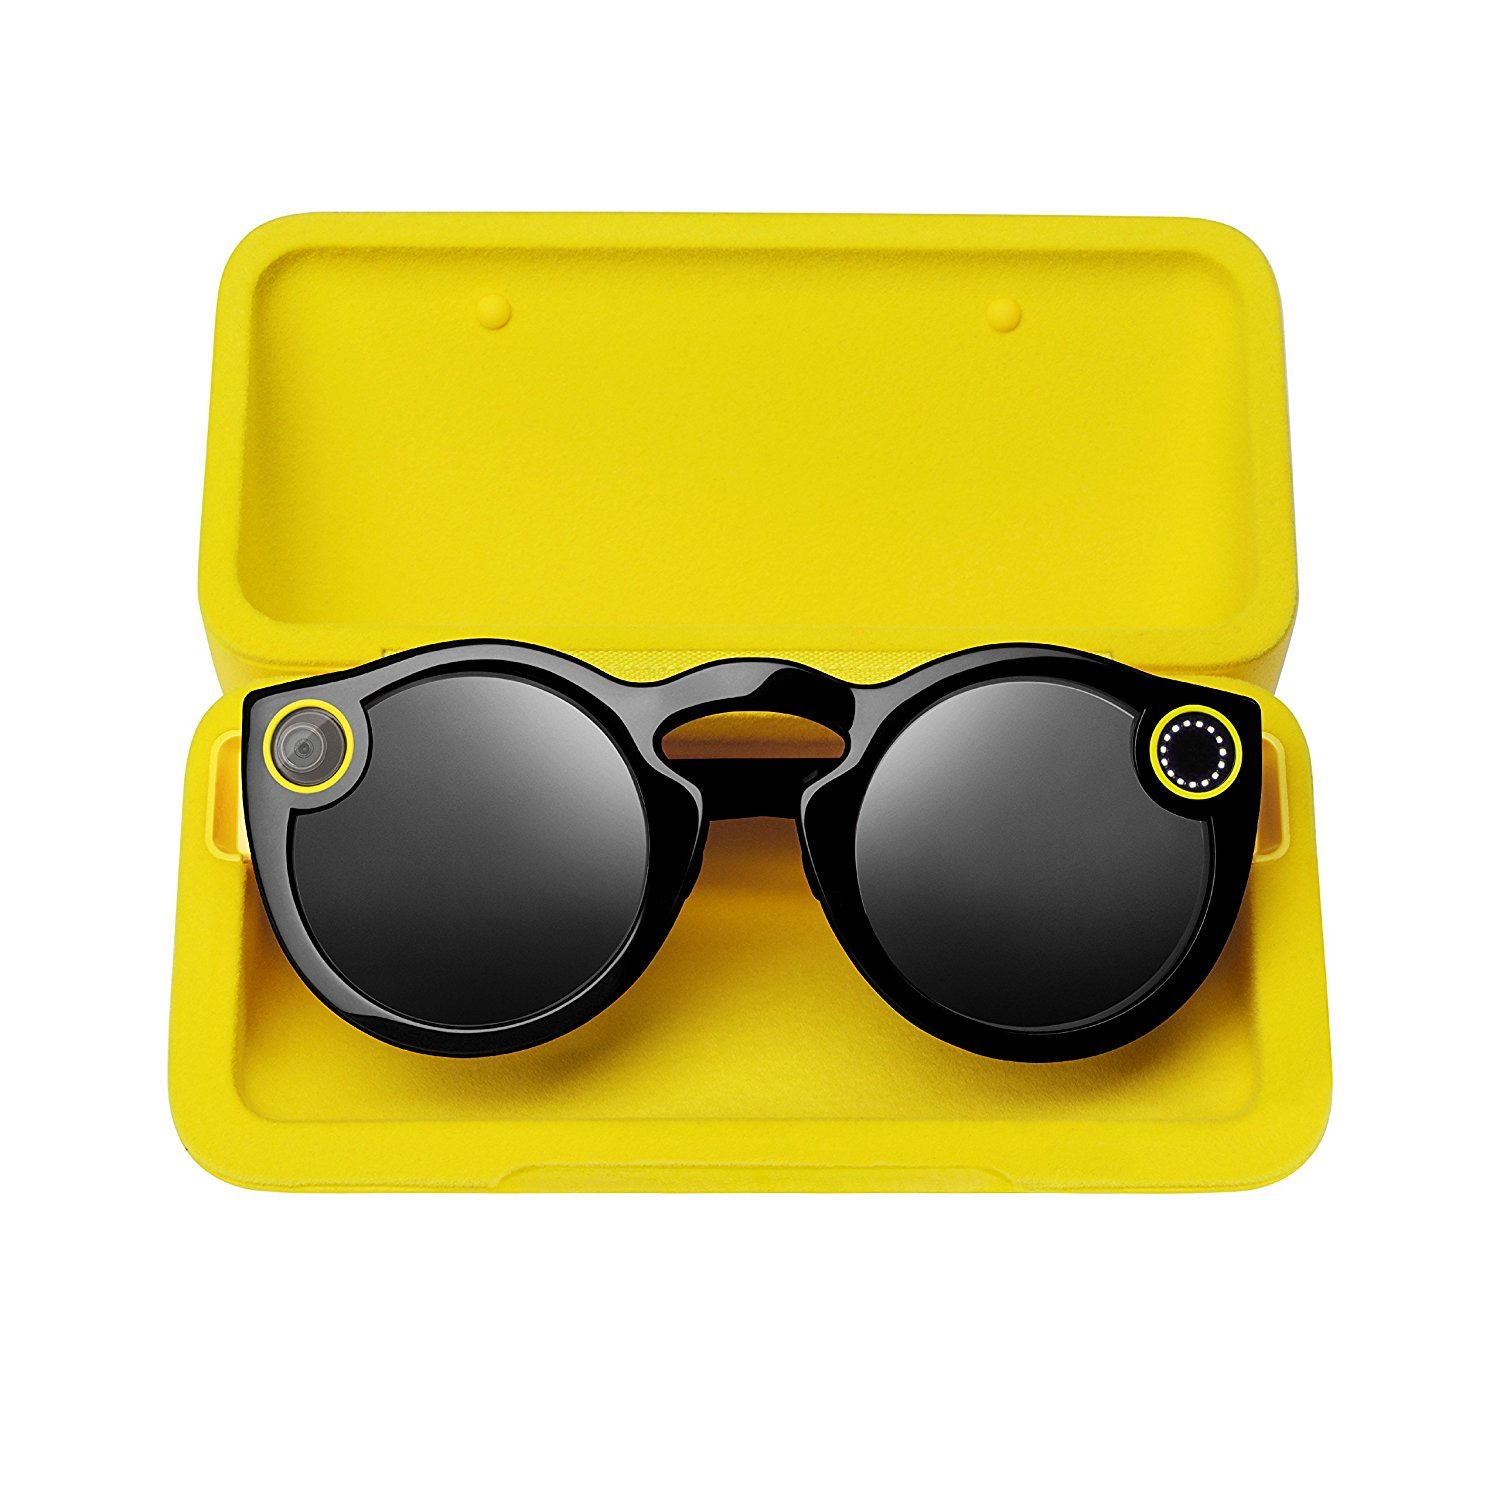 3967526eda5 Amazon.com  2016 Spectacles - Sunglasses for Snapchat  Clothing